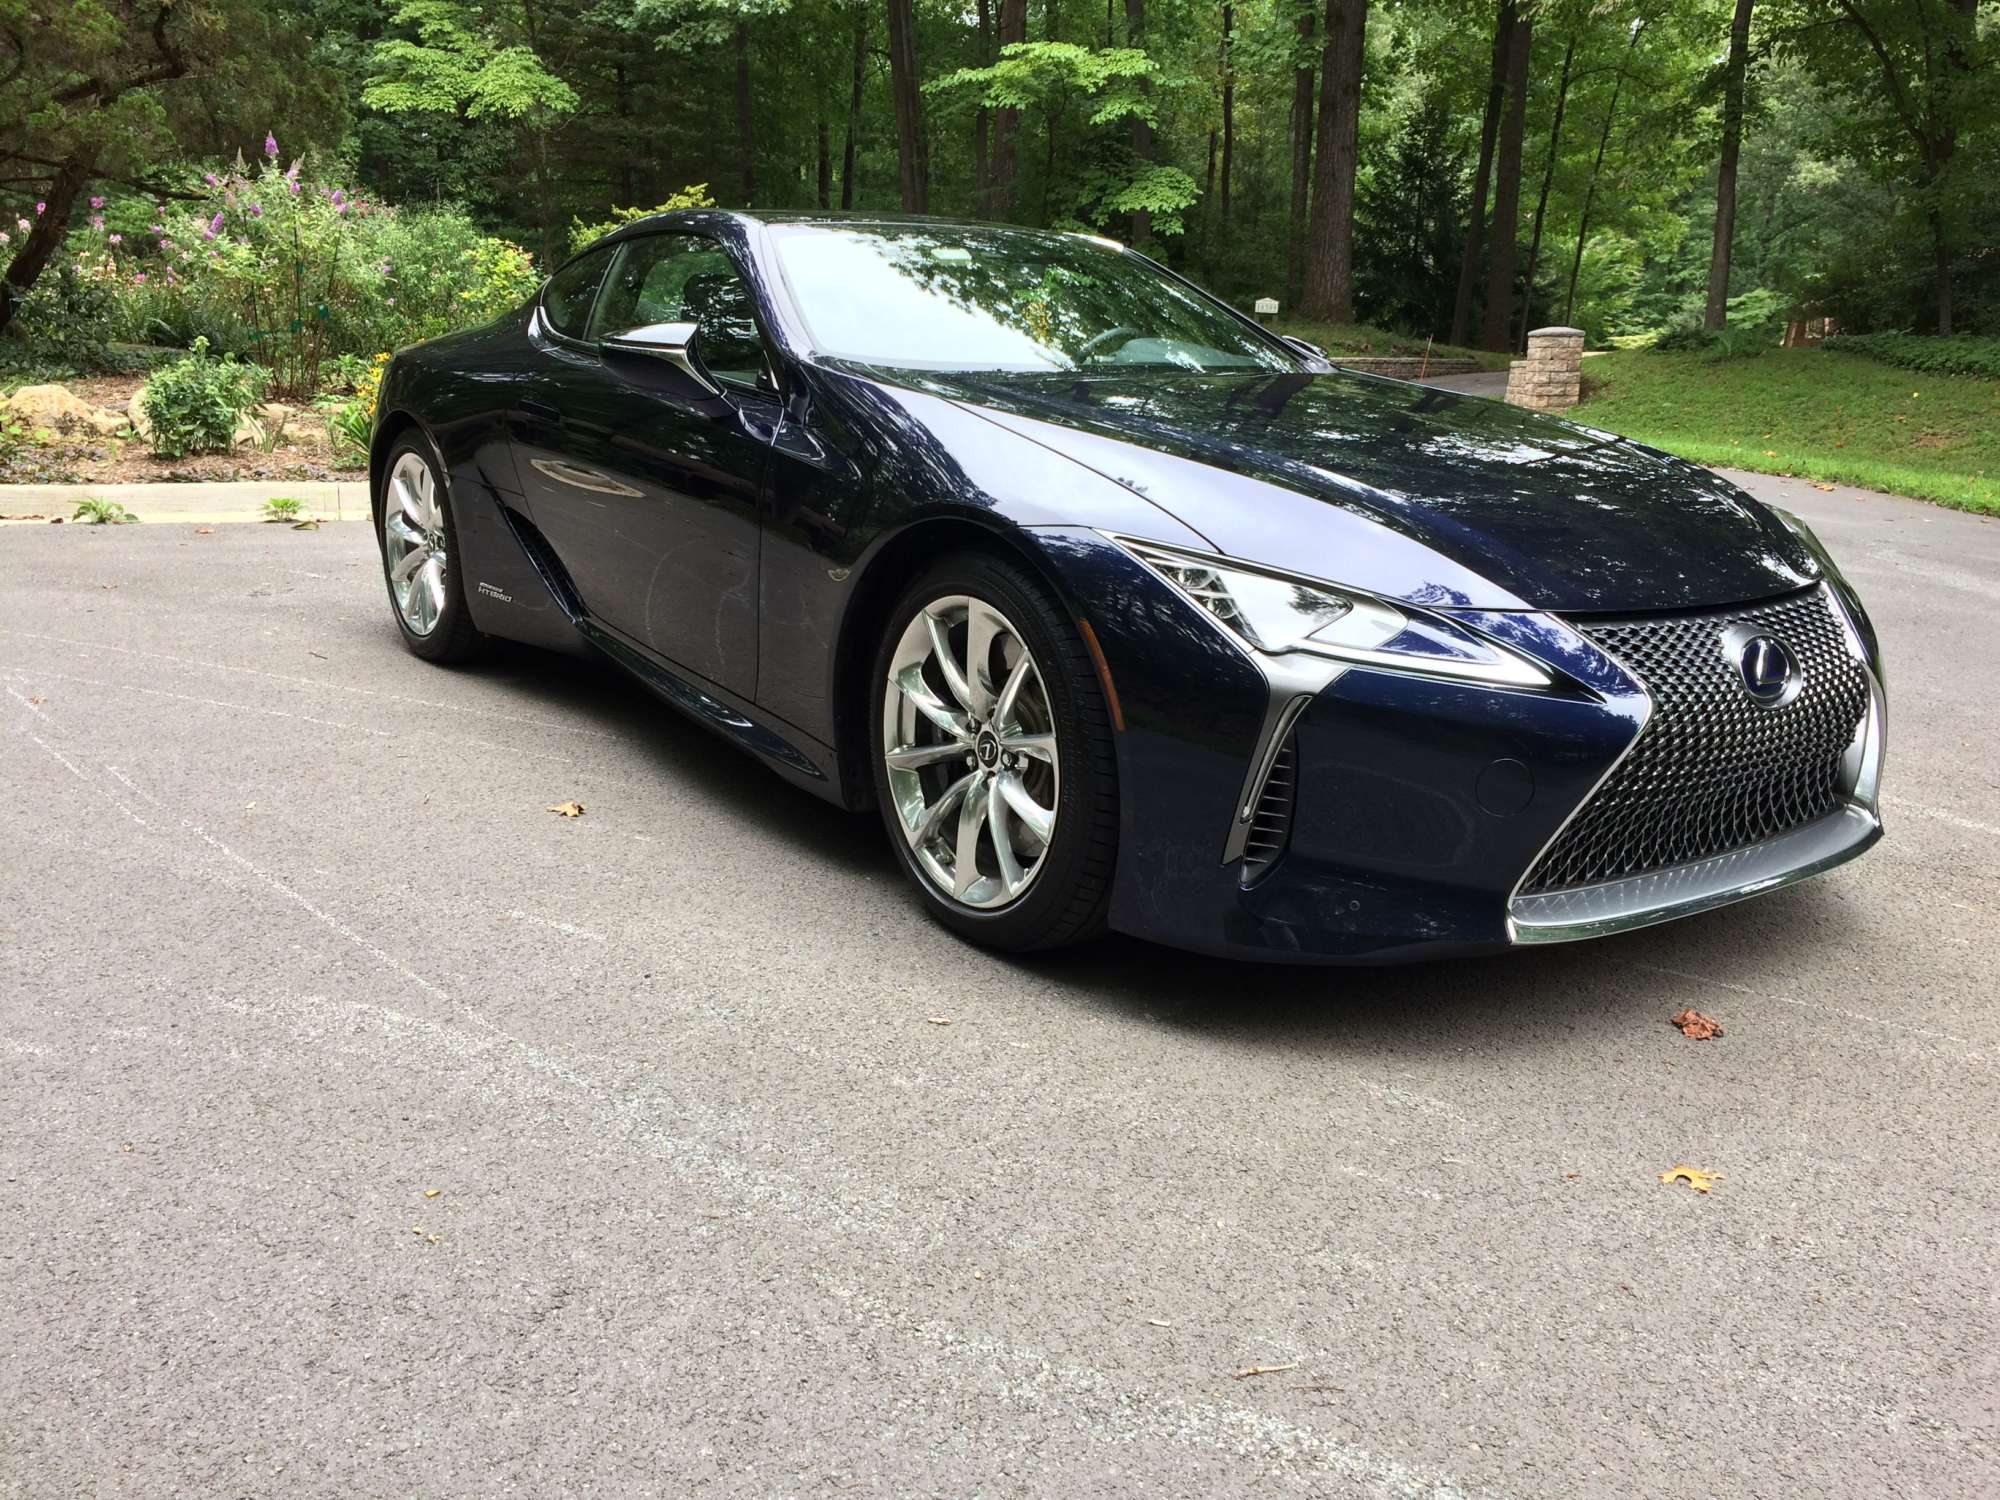 2018 Lexus Lc 500h A Stylish Sports Coupe With Fuel Saving Hybrid